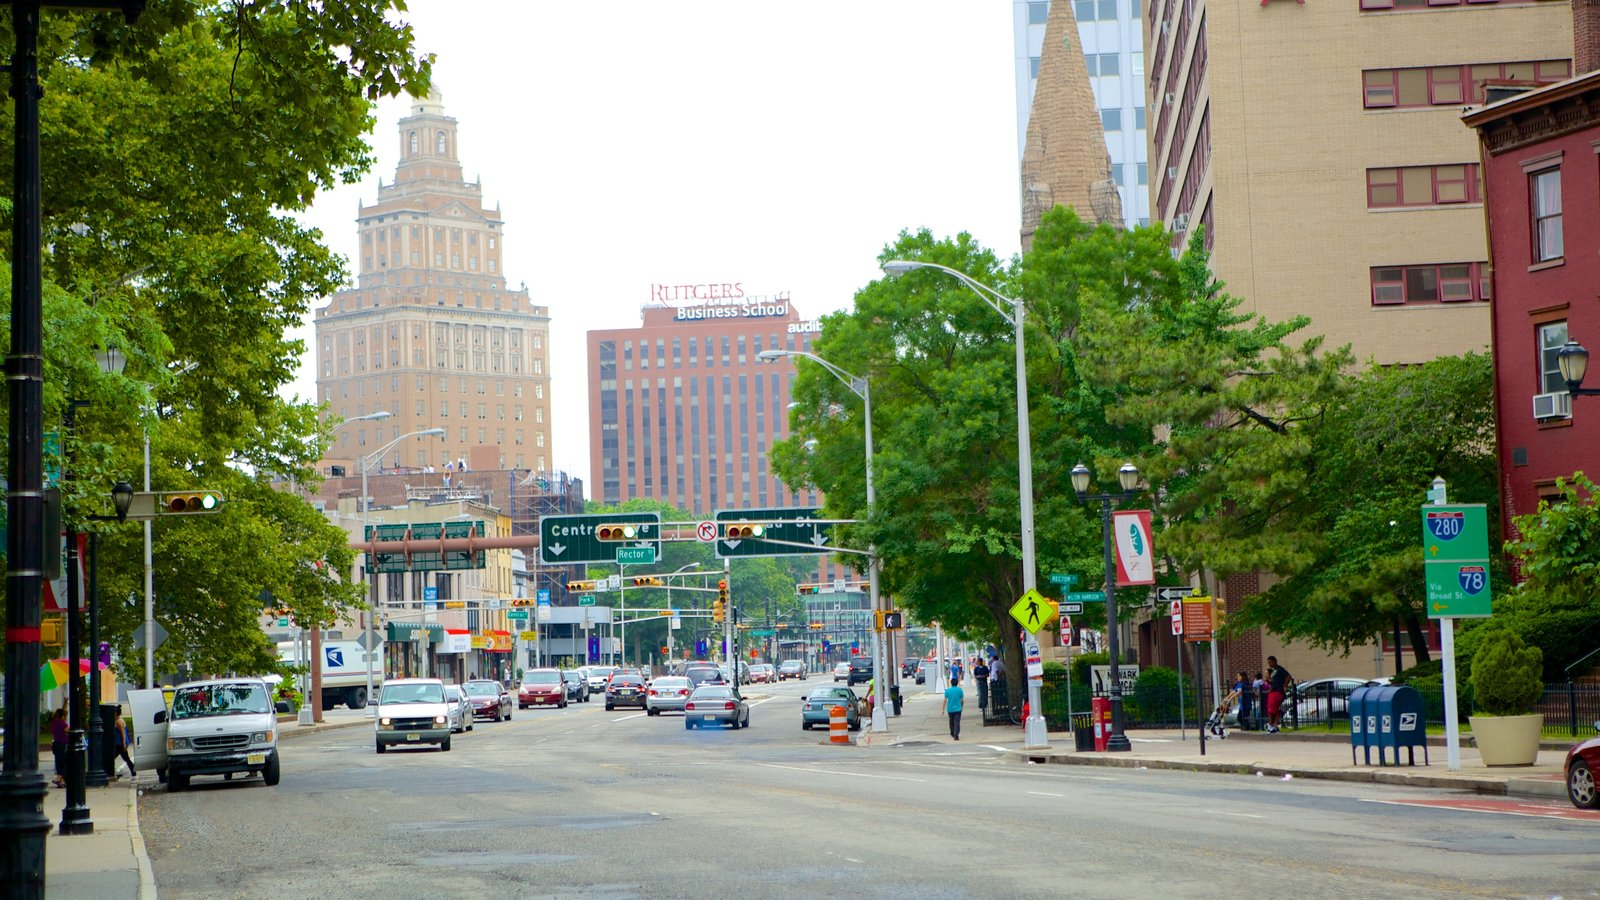 Newark showing street scenes and a city